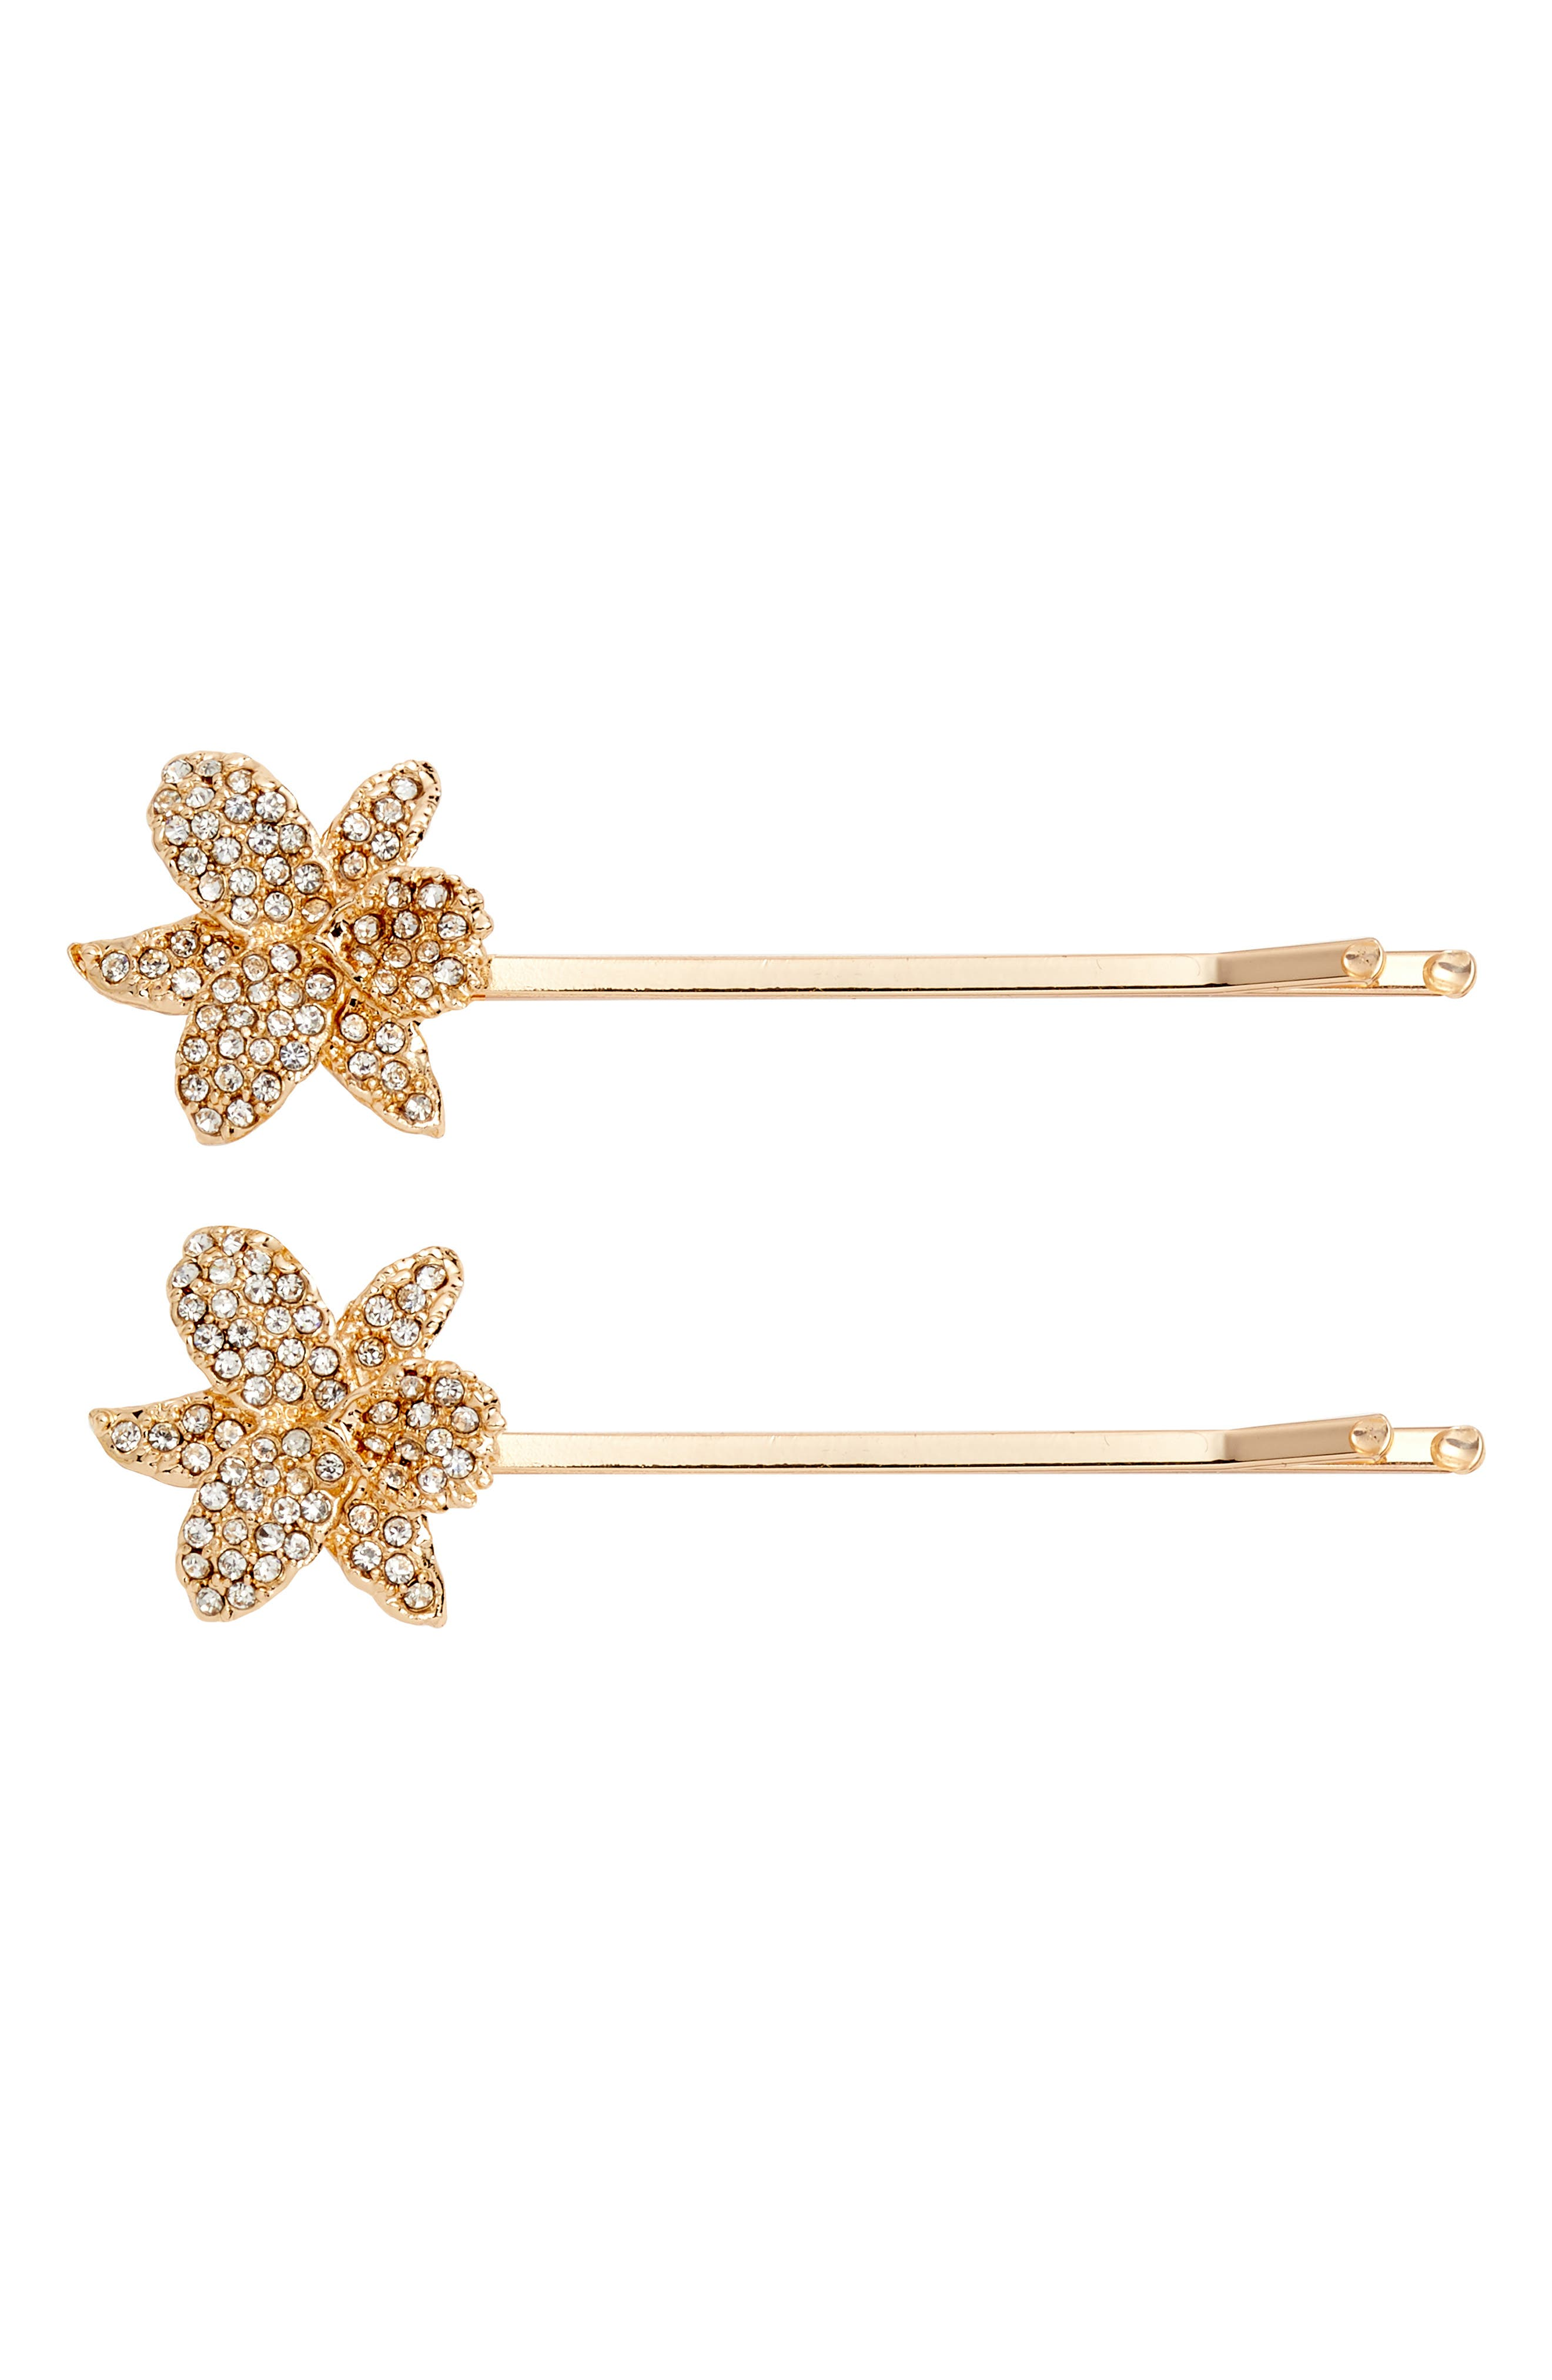 Small Orchid Bobby Pins,                             Main thumbnail 1, color,